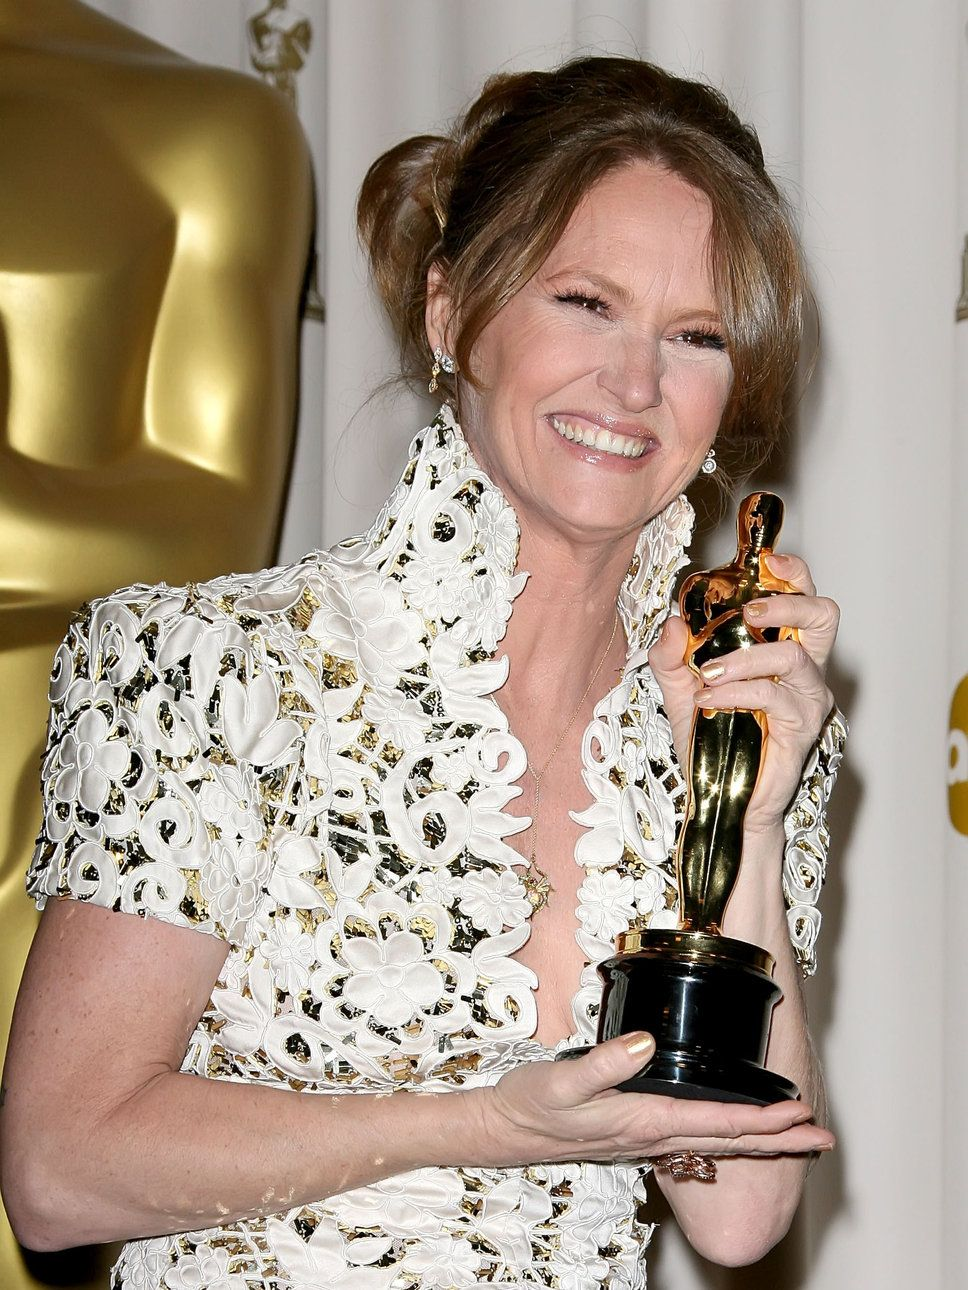 Melissa Leo - Best Supporting Actress for The Fighter, 2010